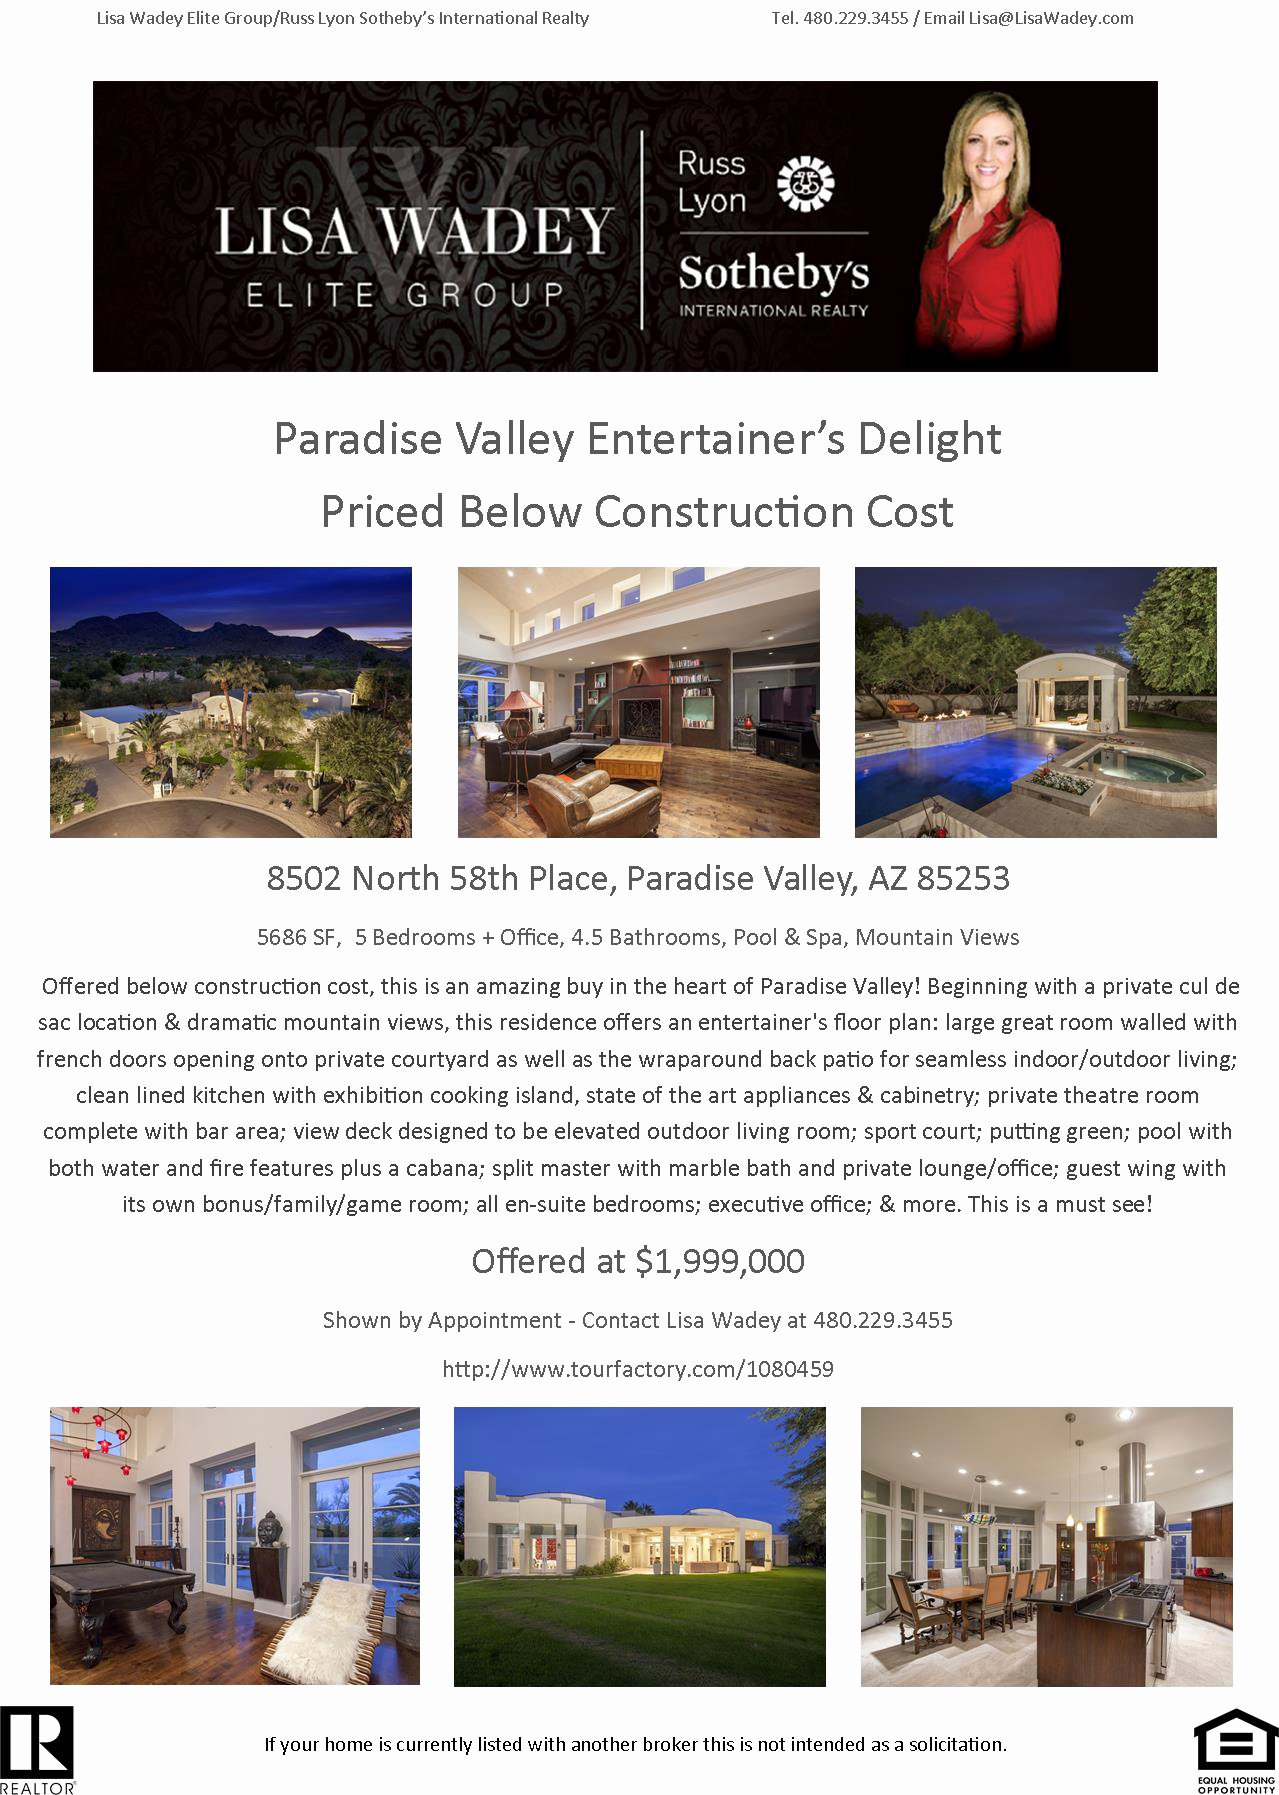 Back Charge Construction Luxury Back On the Market & Priced Below Construction Cost